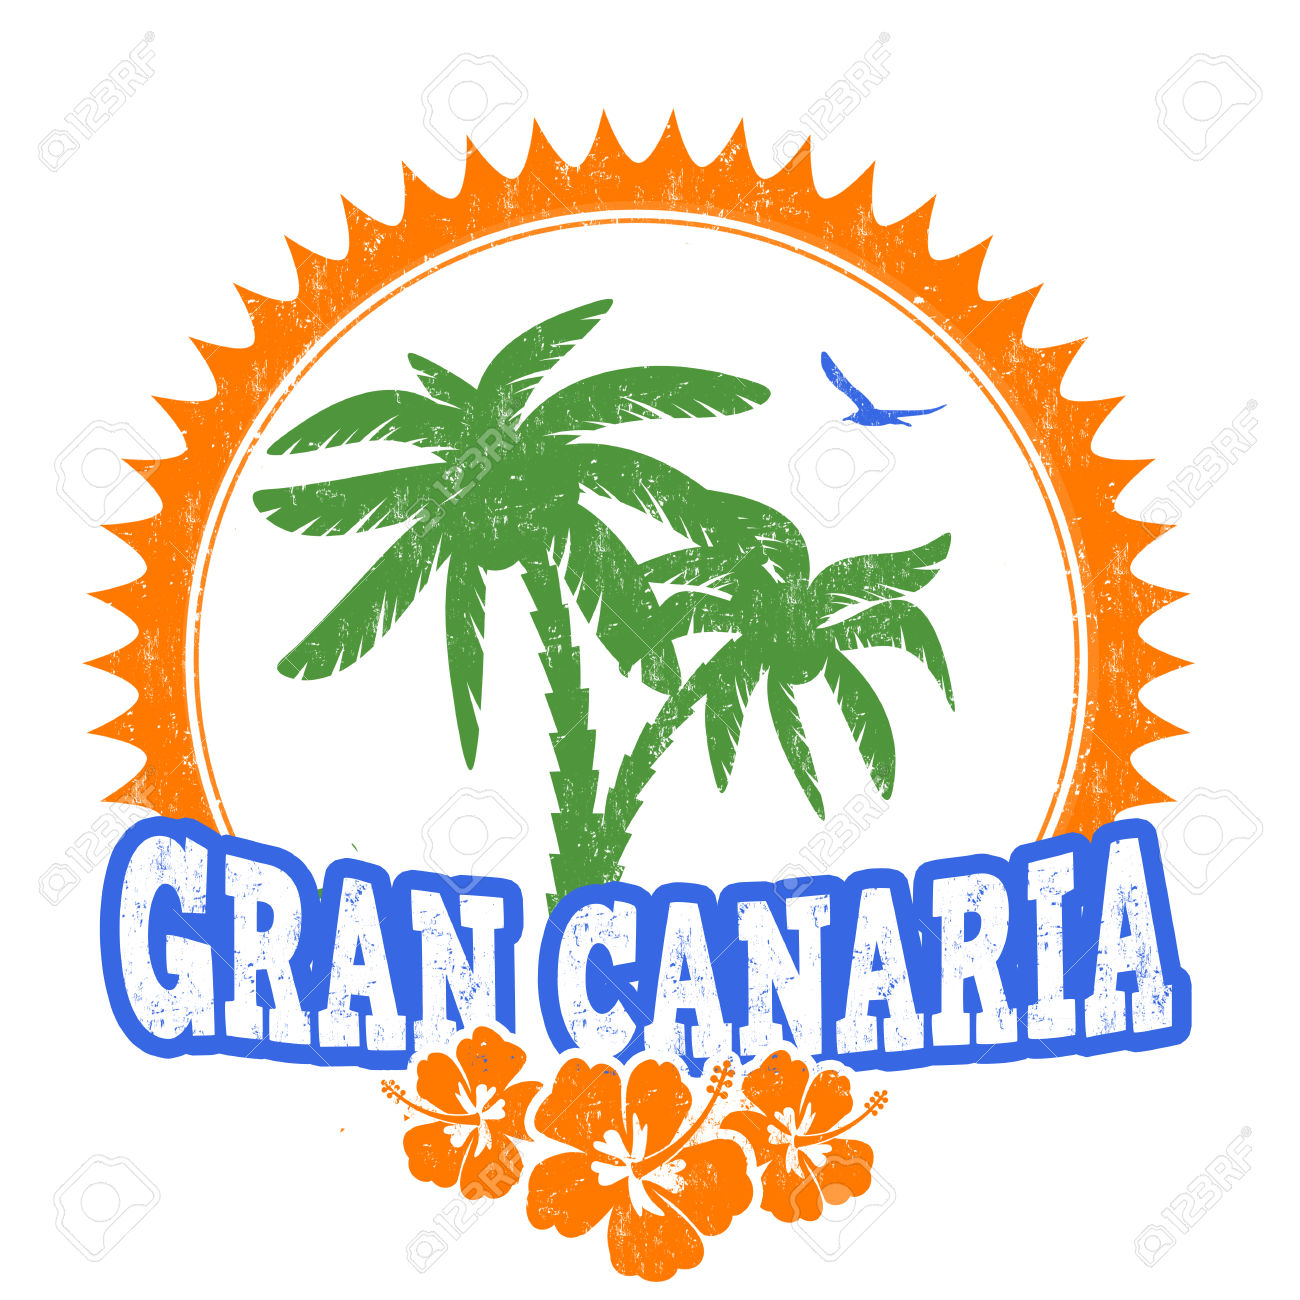 Gran Canaria Travel Rubber Stamp On White Background, Vector.